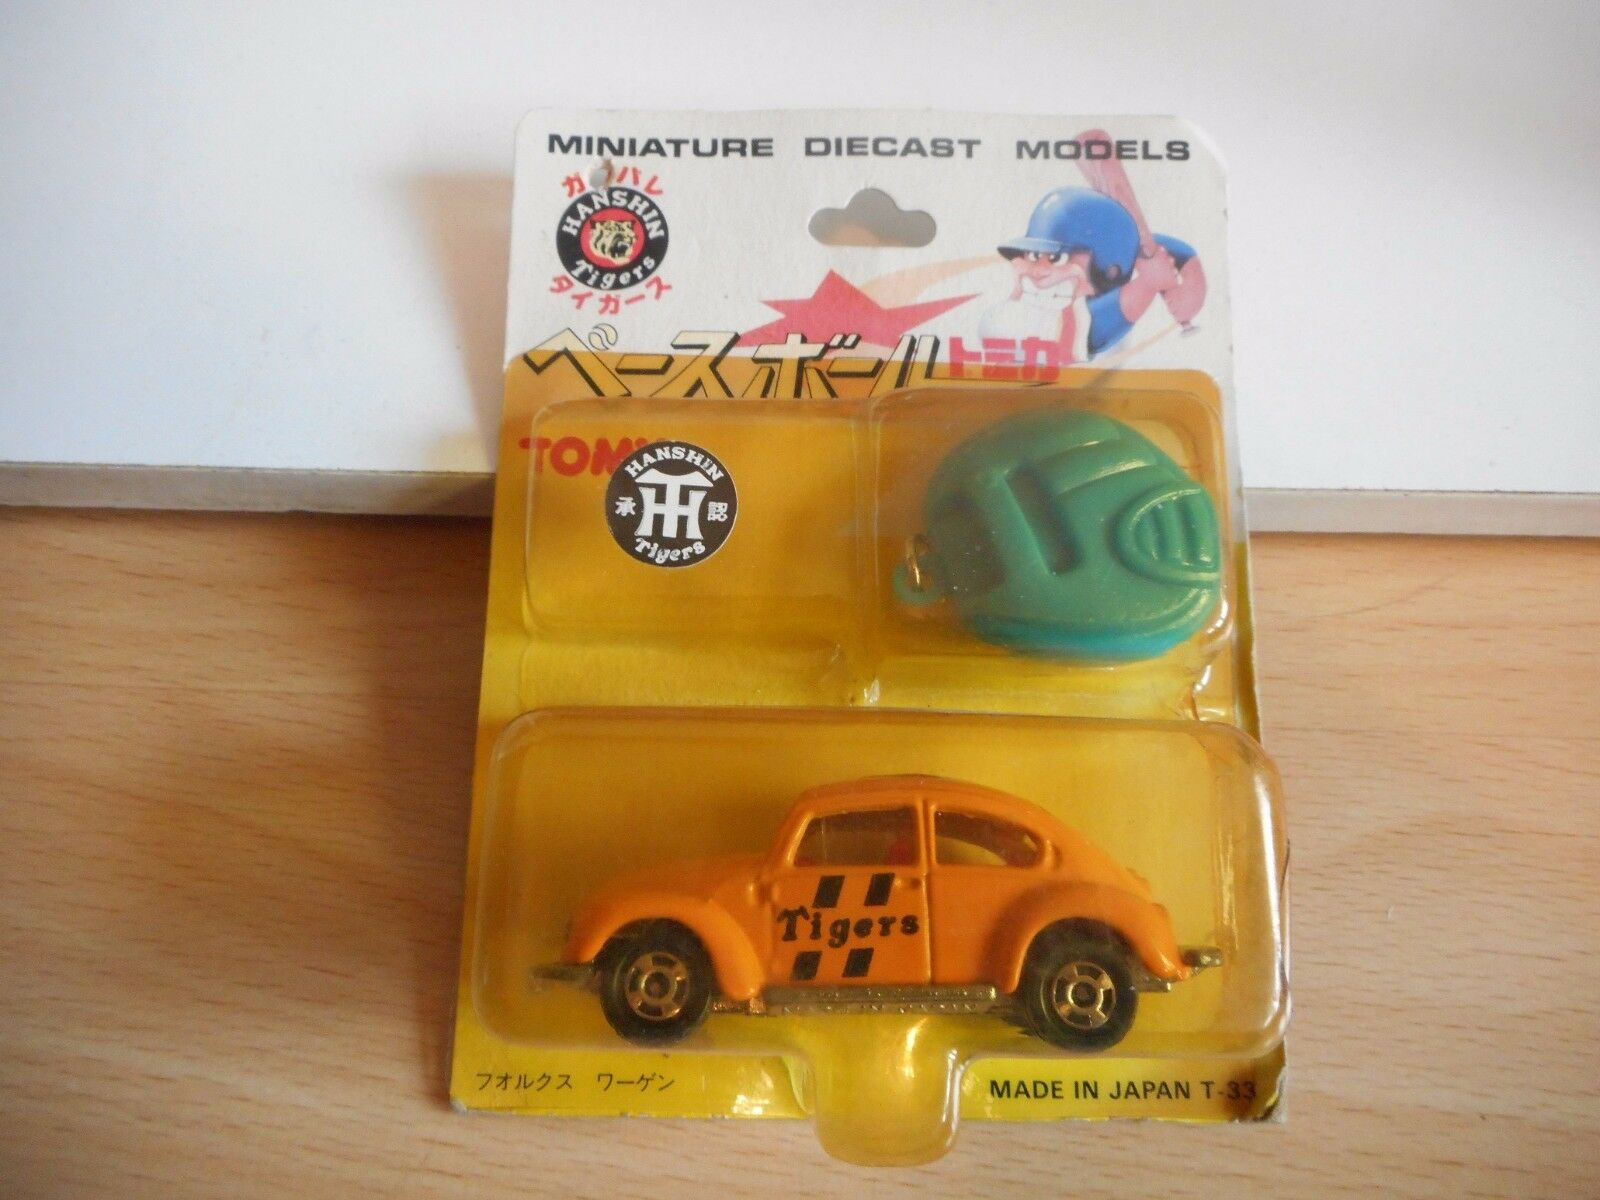 Tomica VW Volkswagen Beetle  Hansin Tigers  in orange on Blister (made in Japan)